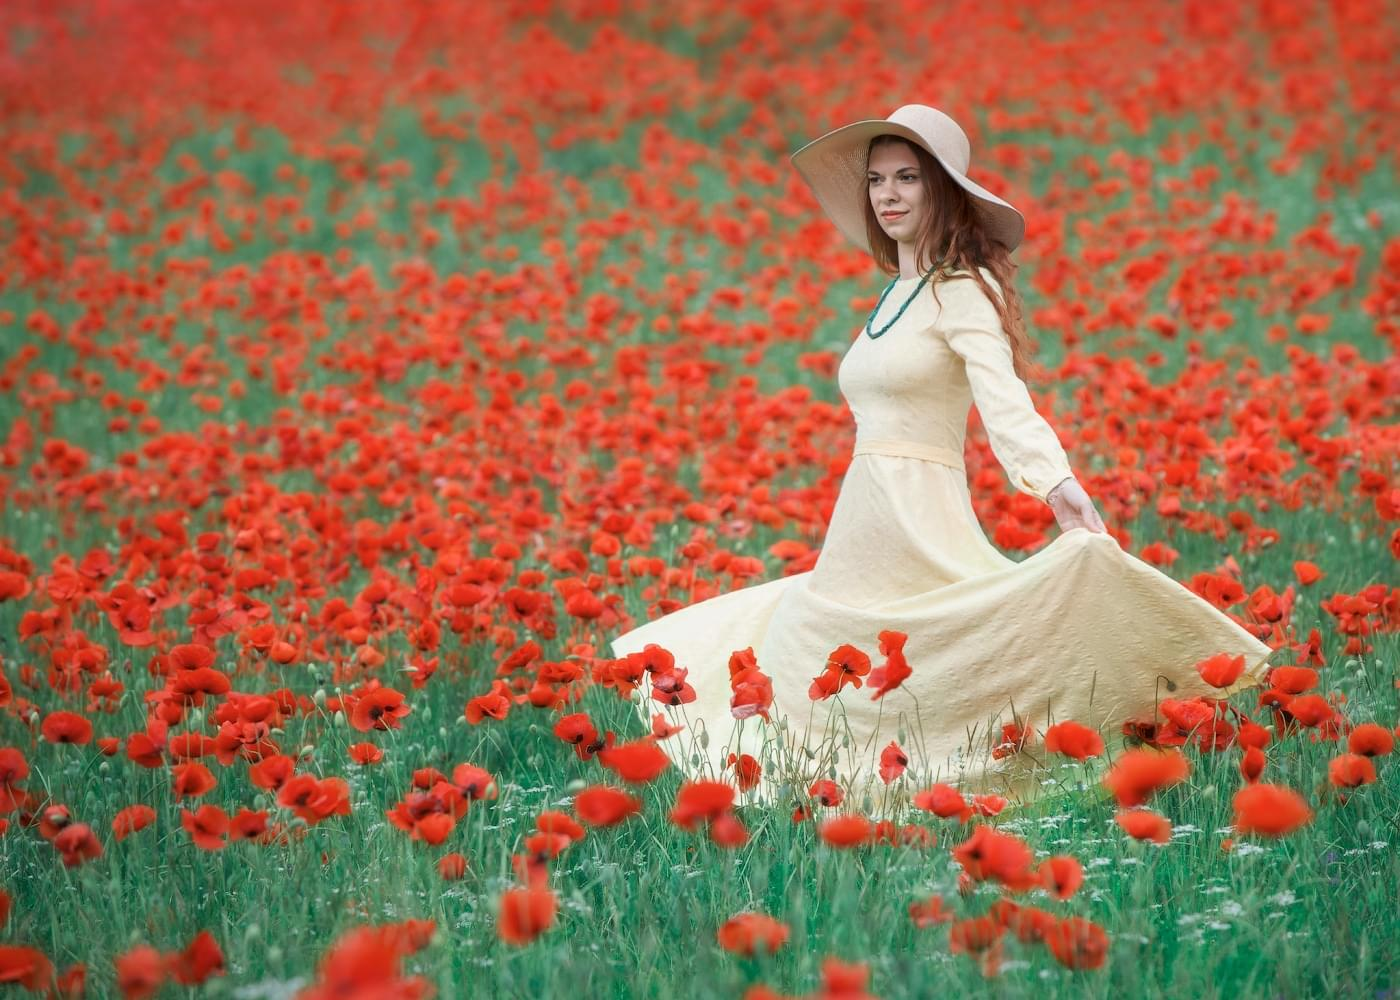 photo tours of the Crimea - photo with a model - spring flowering poppies Turgenevka